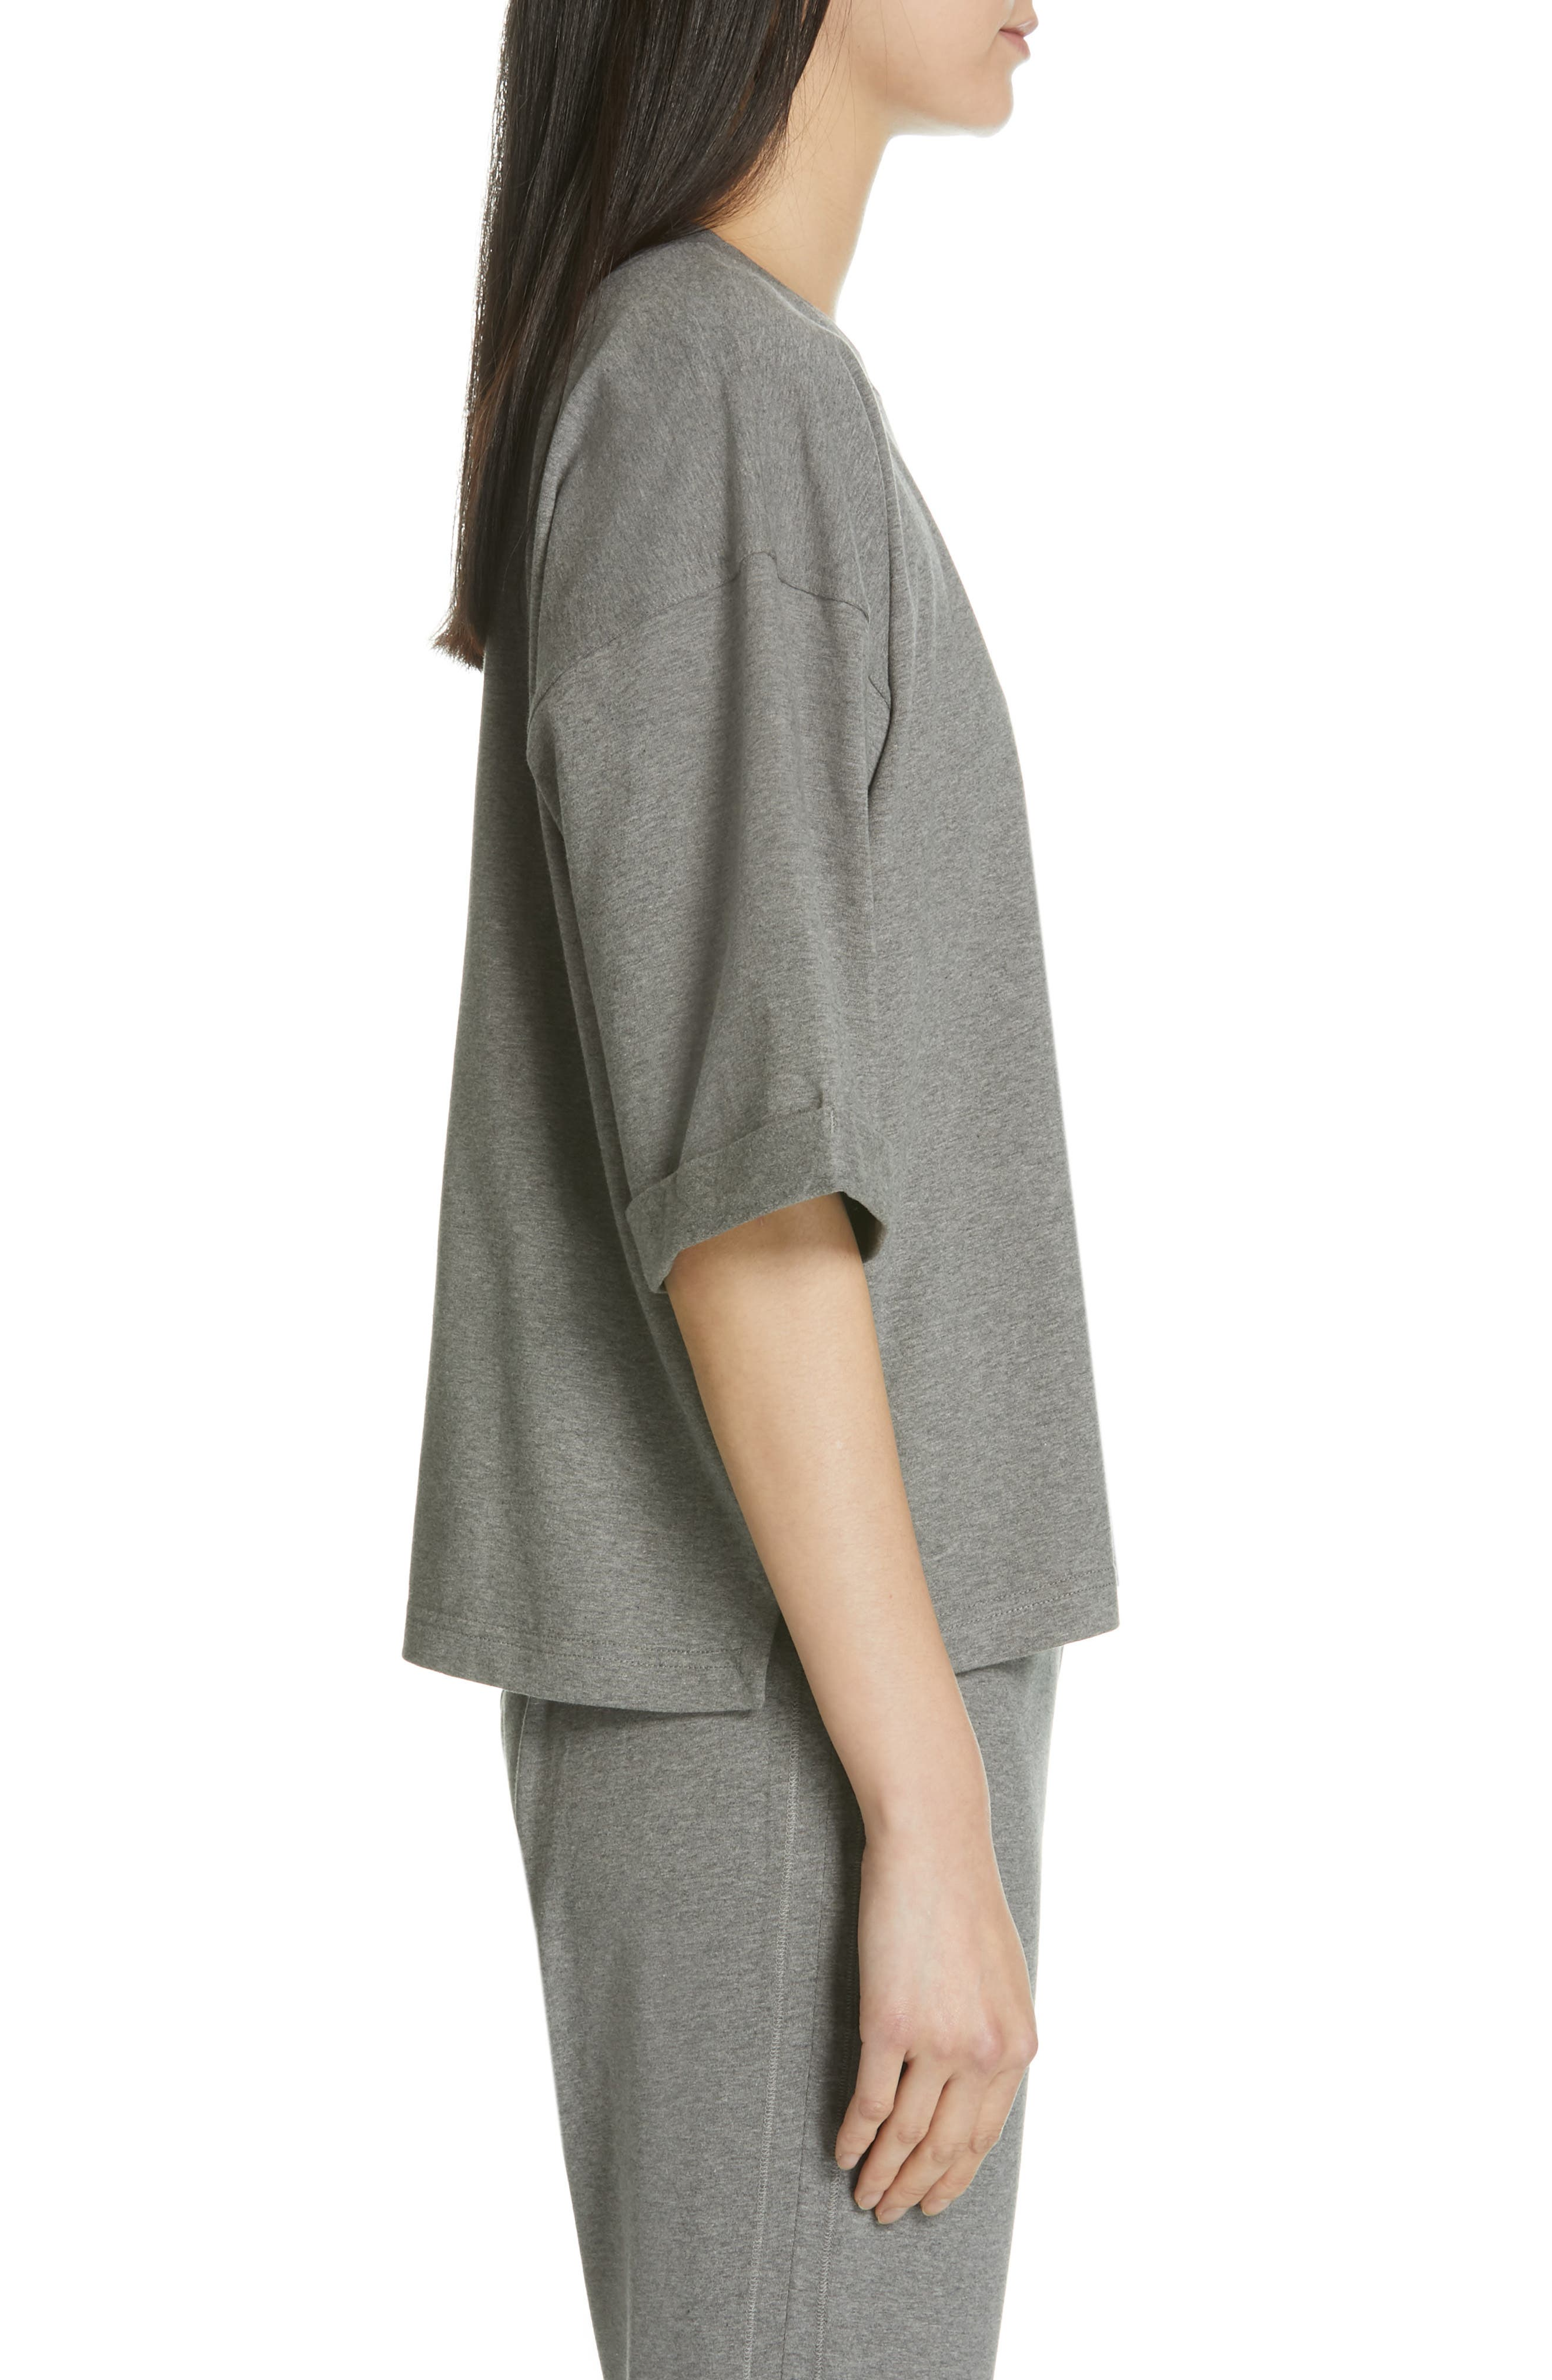 EILEEN FISHER, Stretch Organic Cotton Top, Alternate thumbnail 3, color, MOON